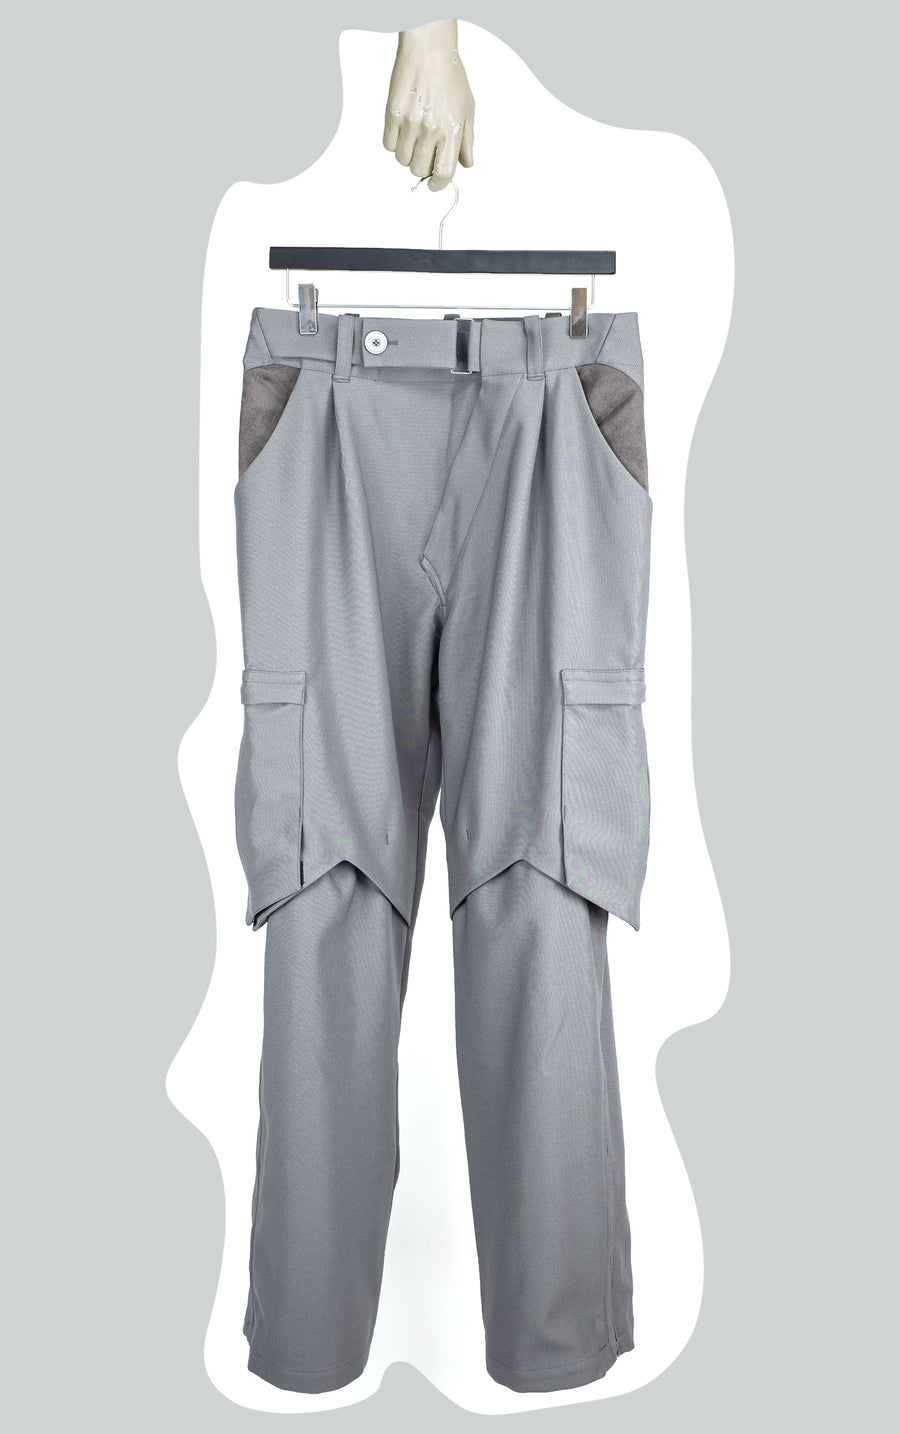 00092020 BINDRA CARGO TROUSERS GREY